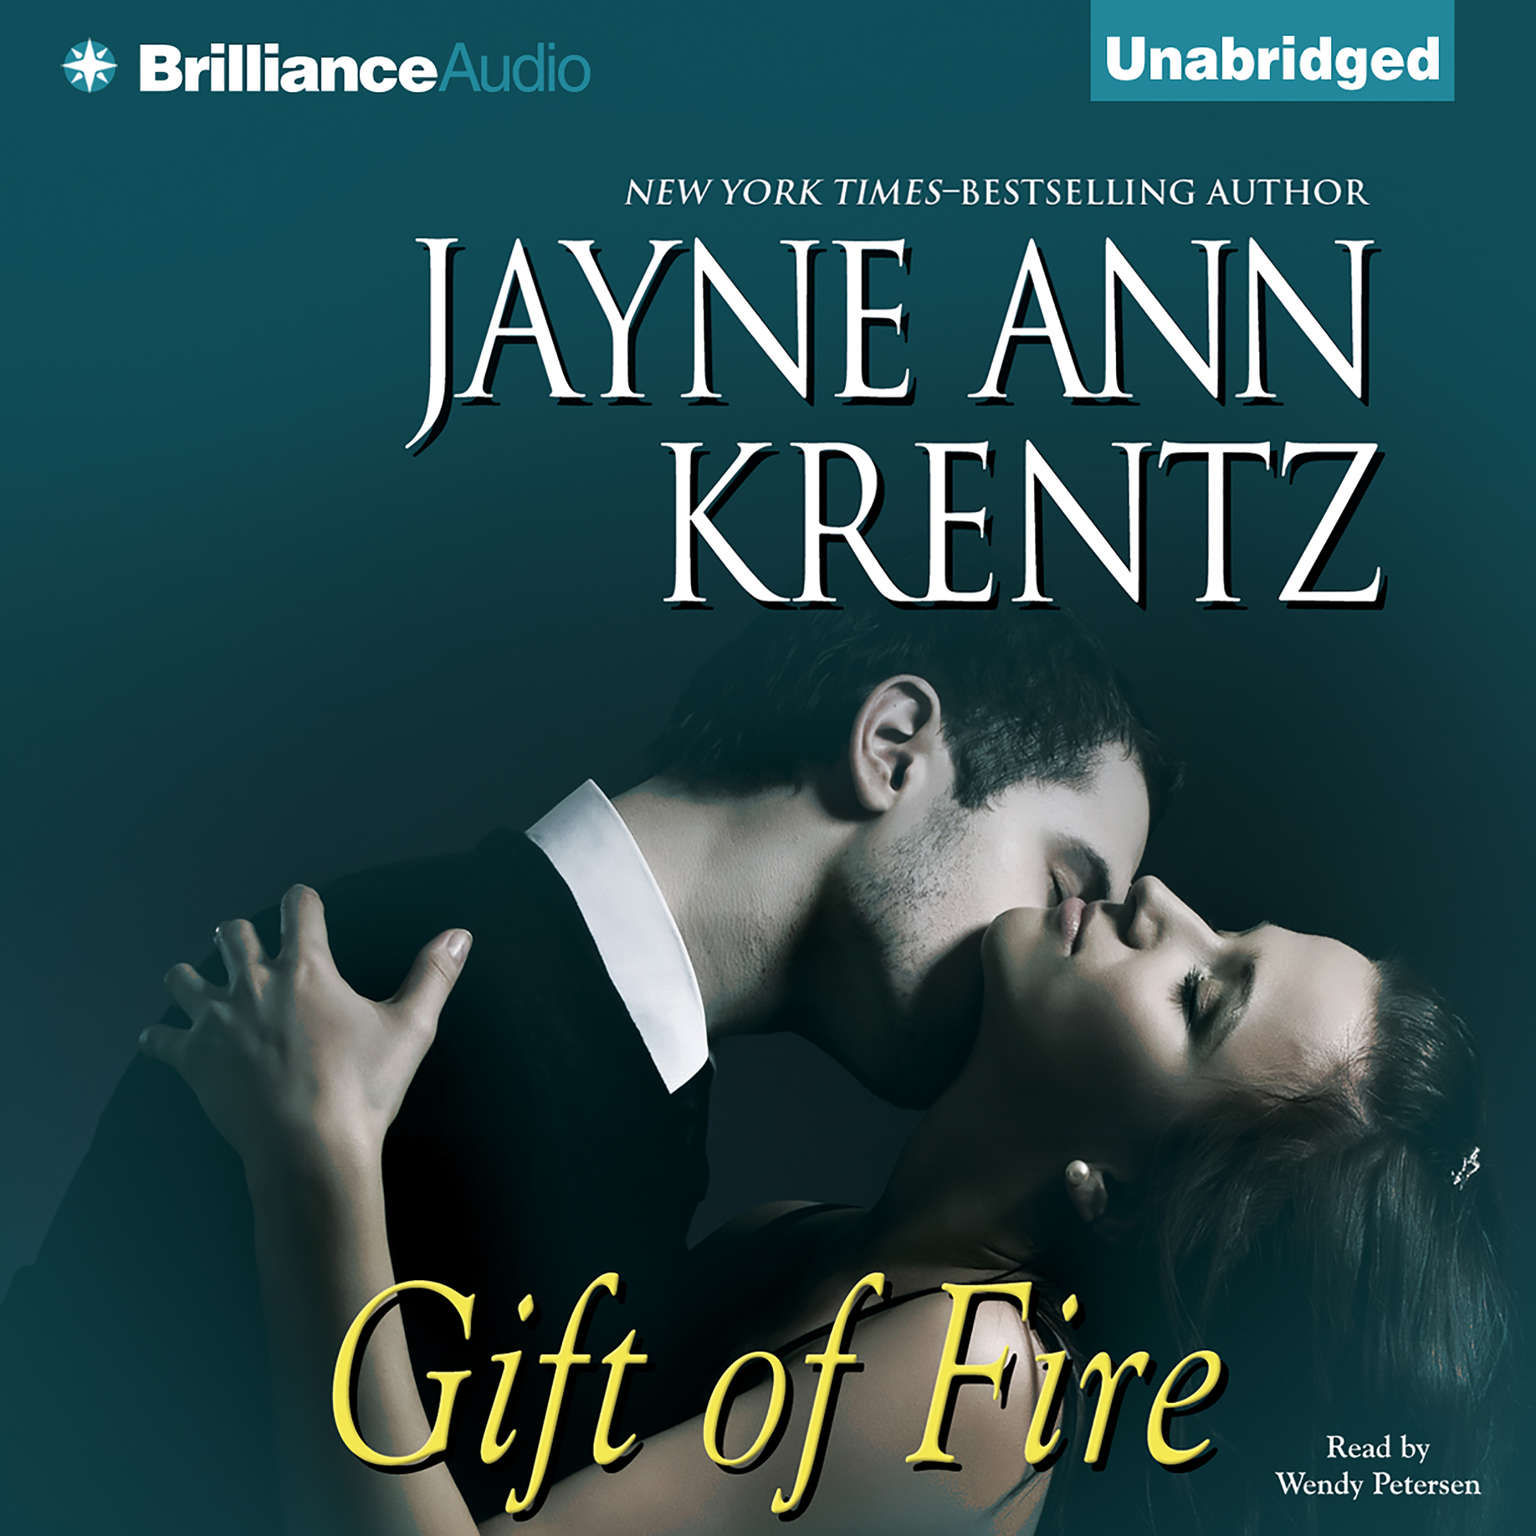 Gift of Fire - Audiobook | Listen Instantly!